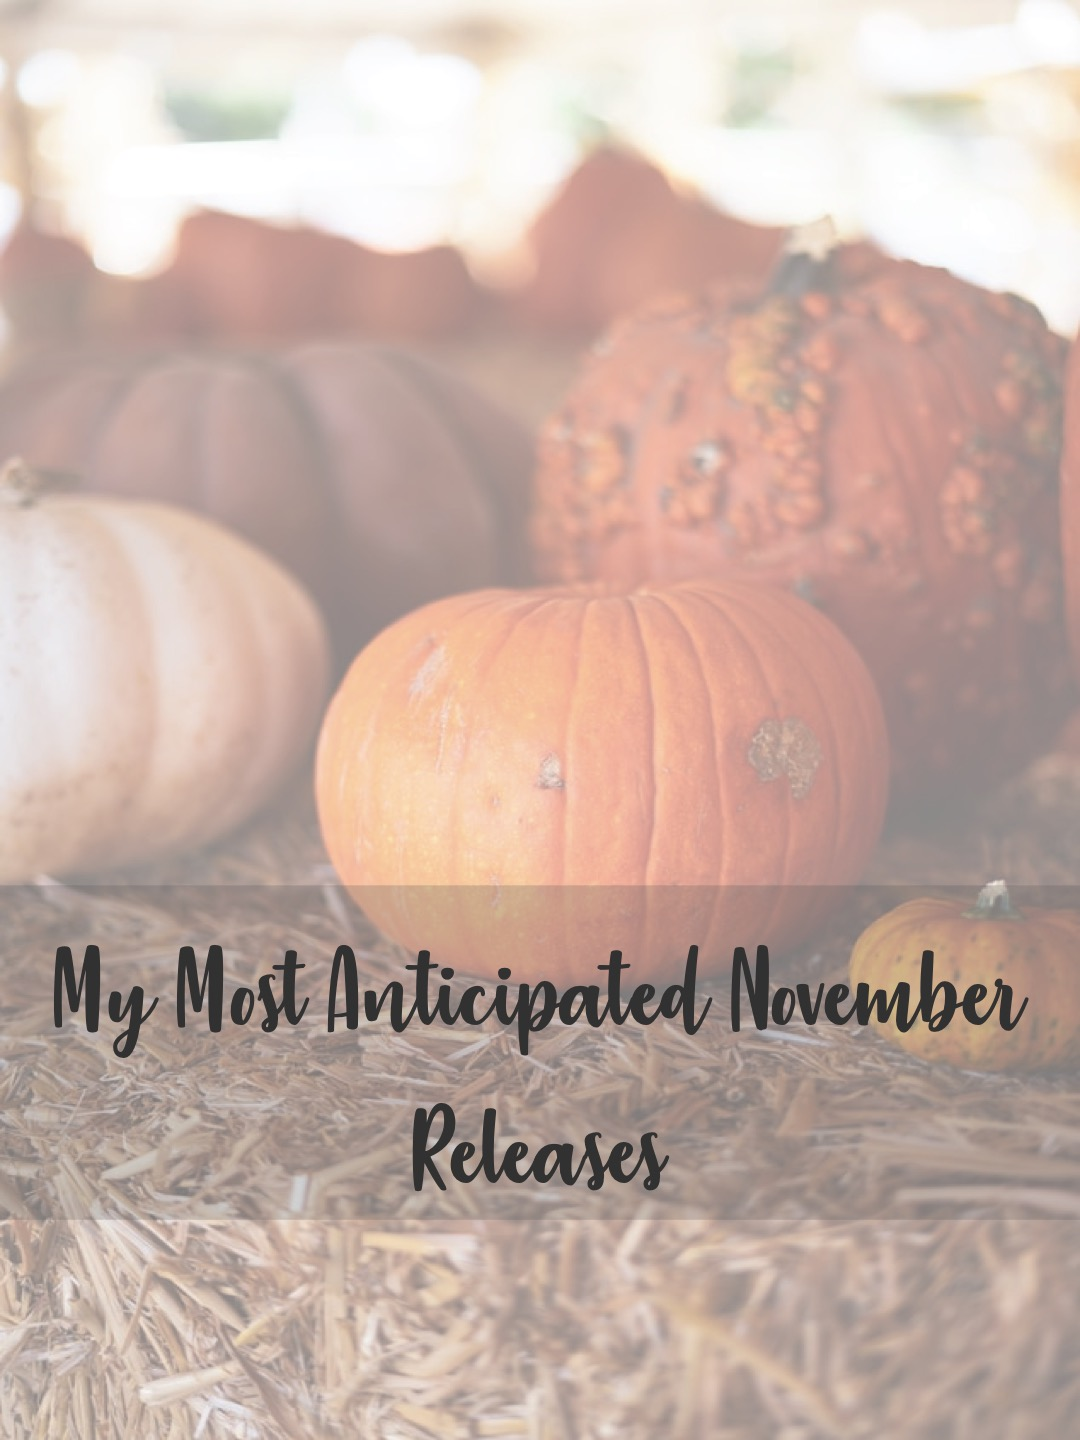 My Most Anticipated November Releases